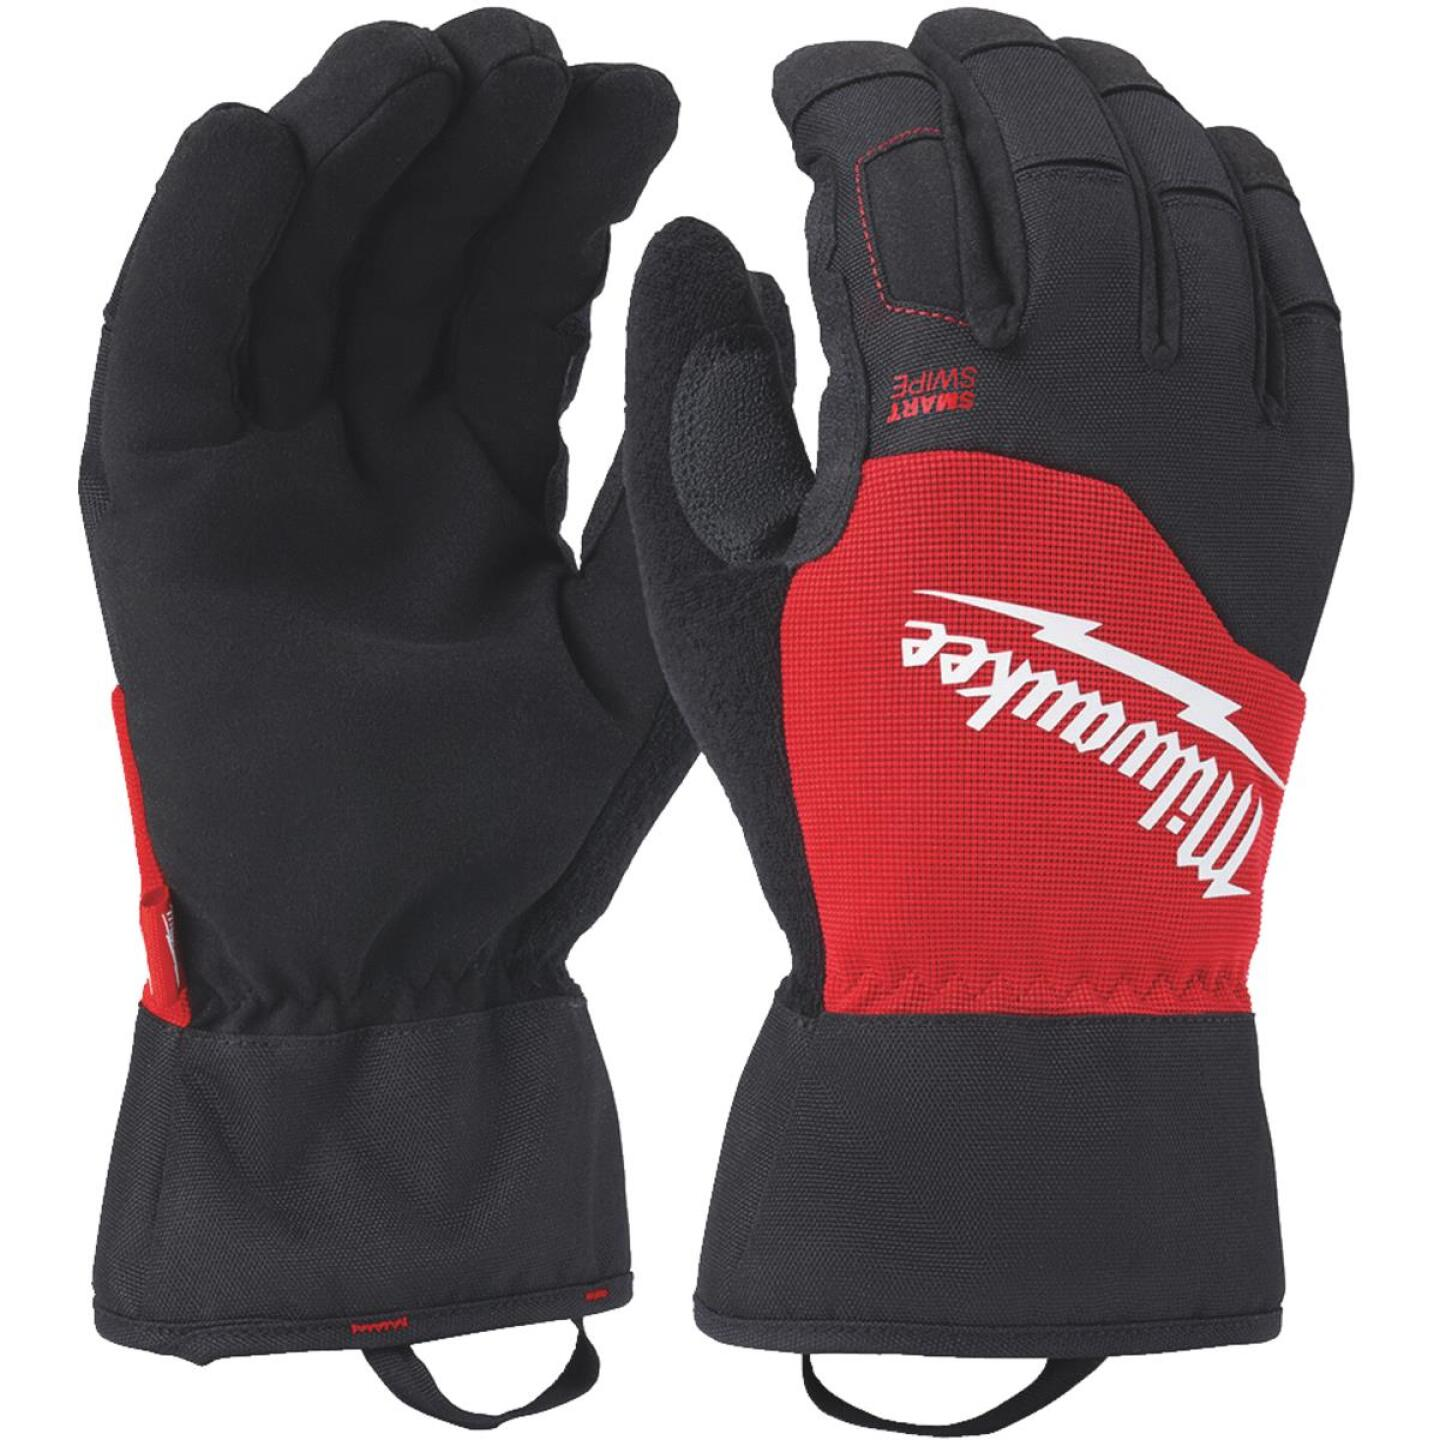 Milwaukee Men's Large Synthetic Winter Performance Glove Image 1